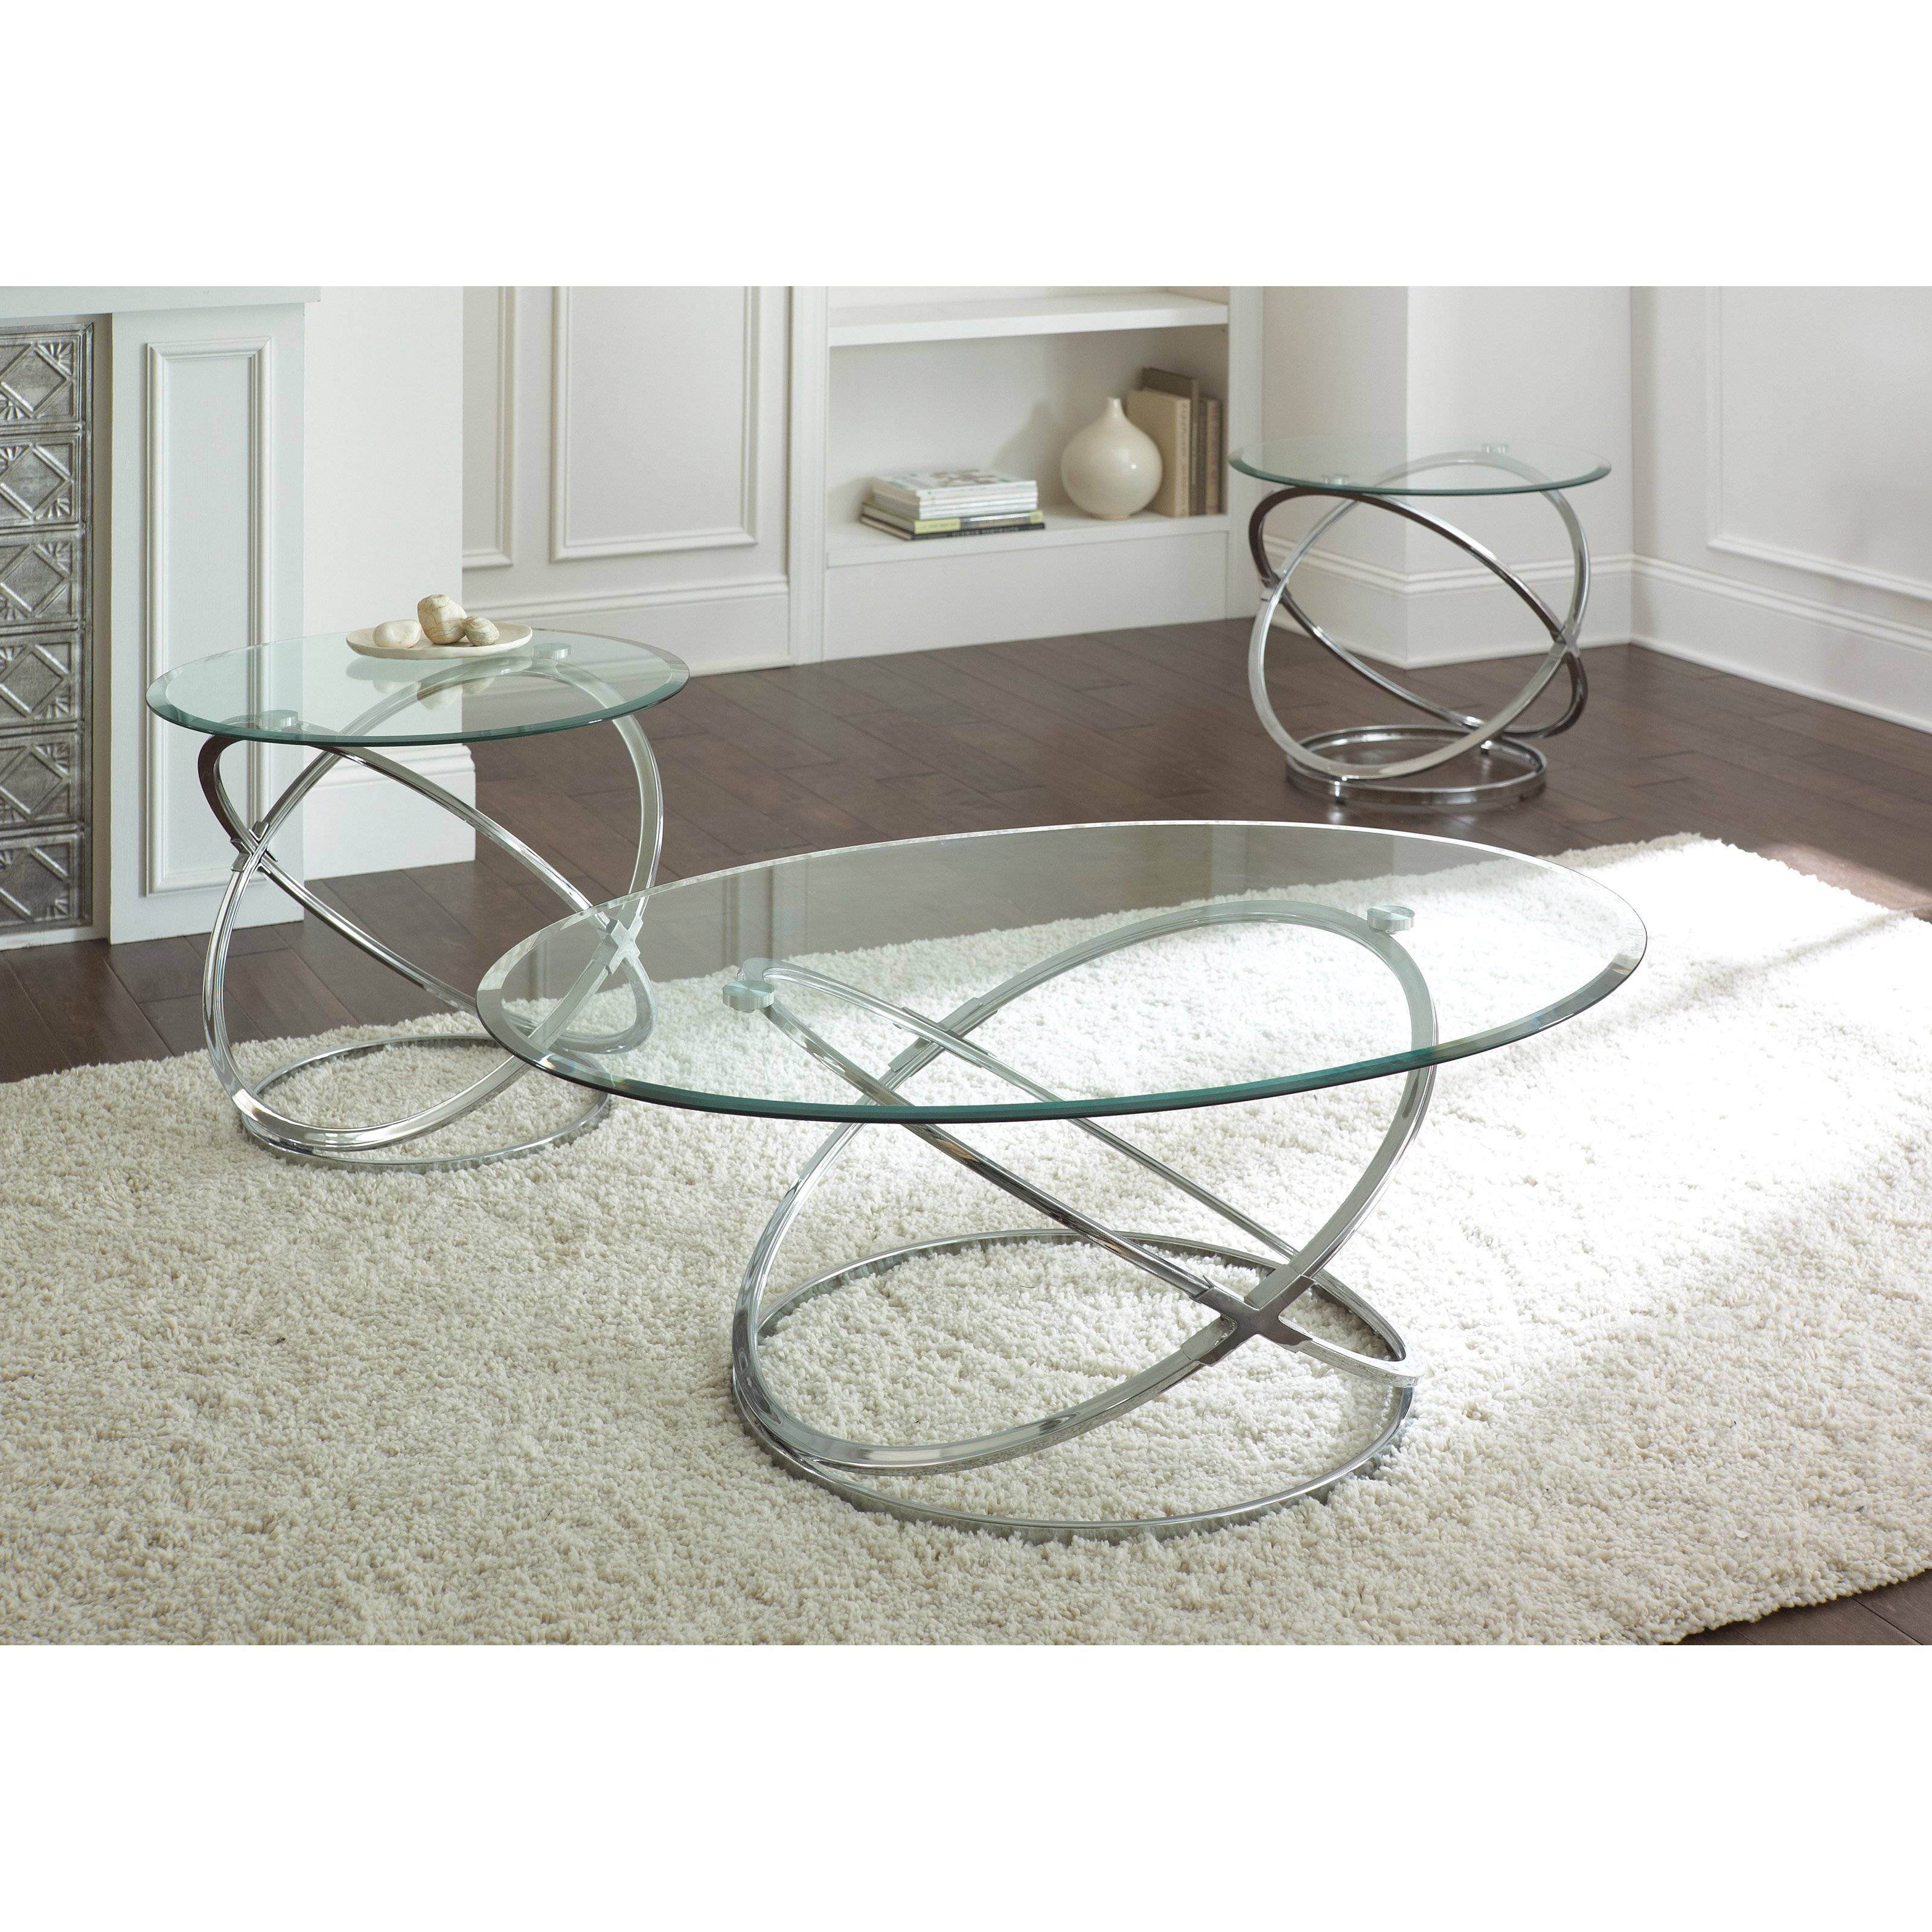 Steve Silver Orion Oval Chrome And Glass Coffee Table Set pertaining to Oval Glass Coffee Tables (Image 30 of 30)